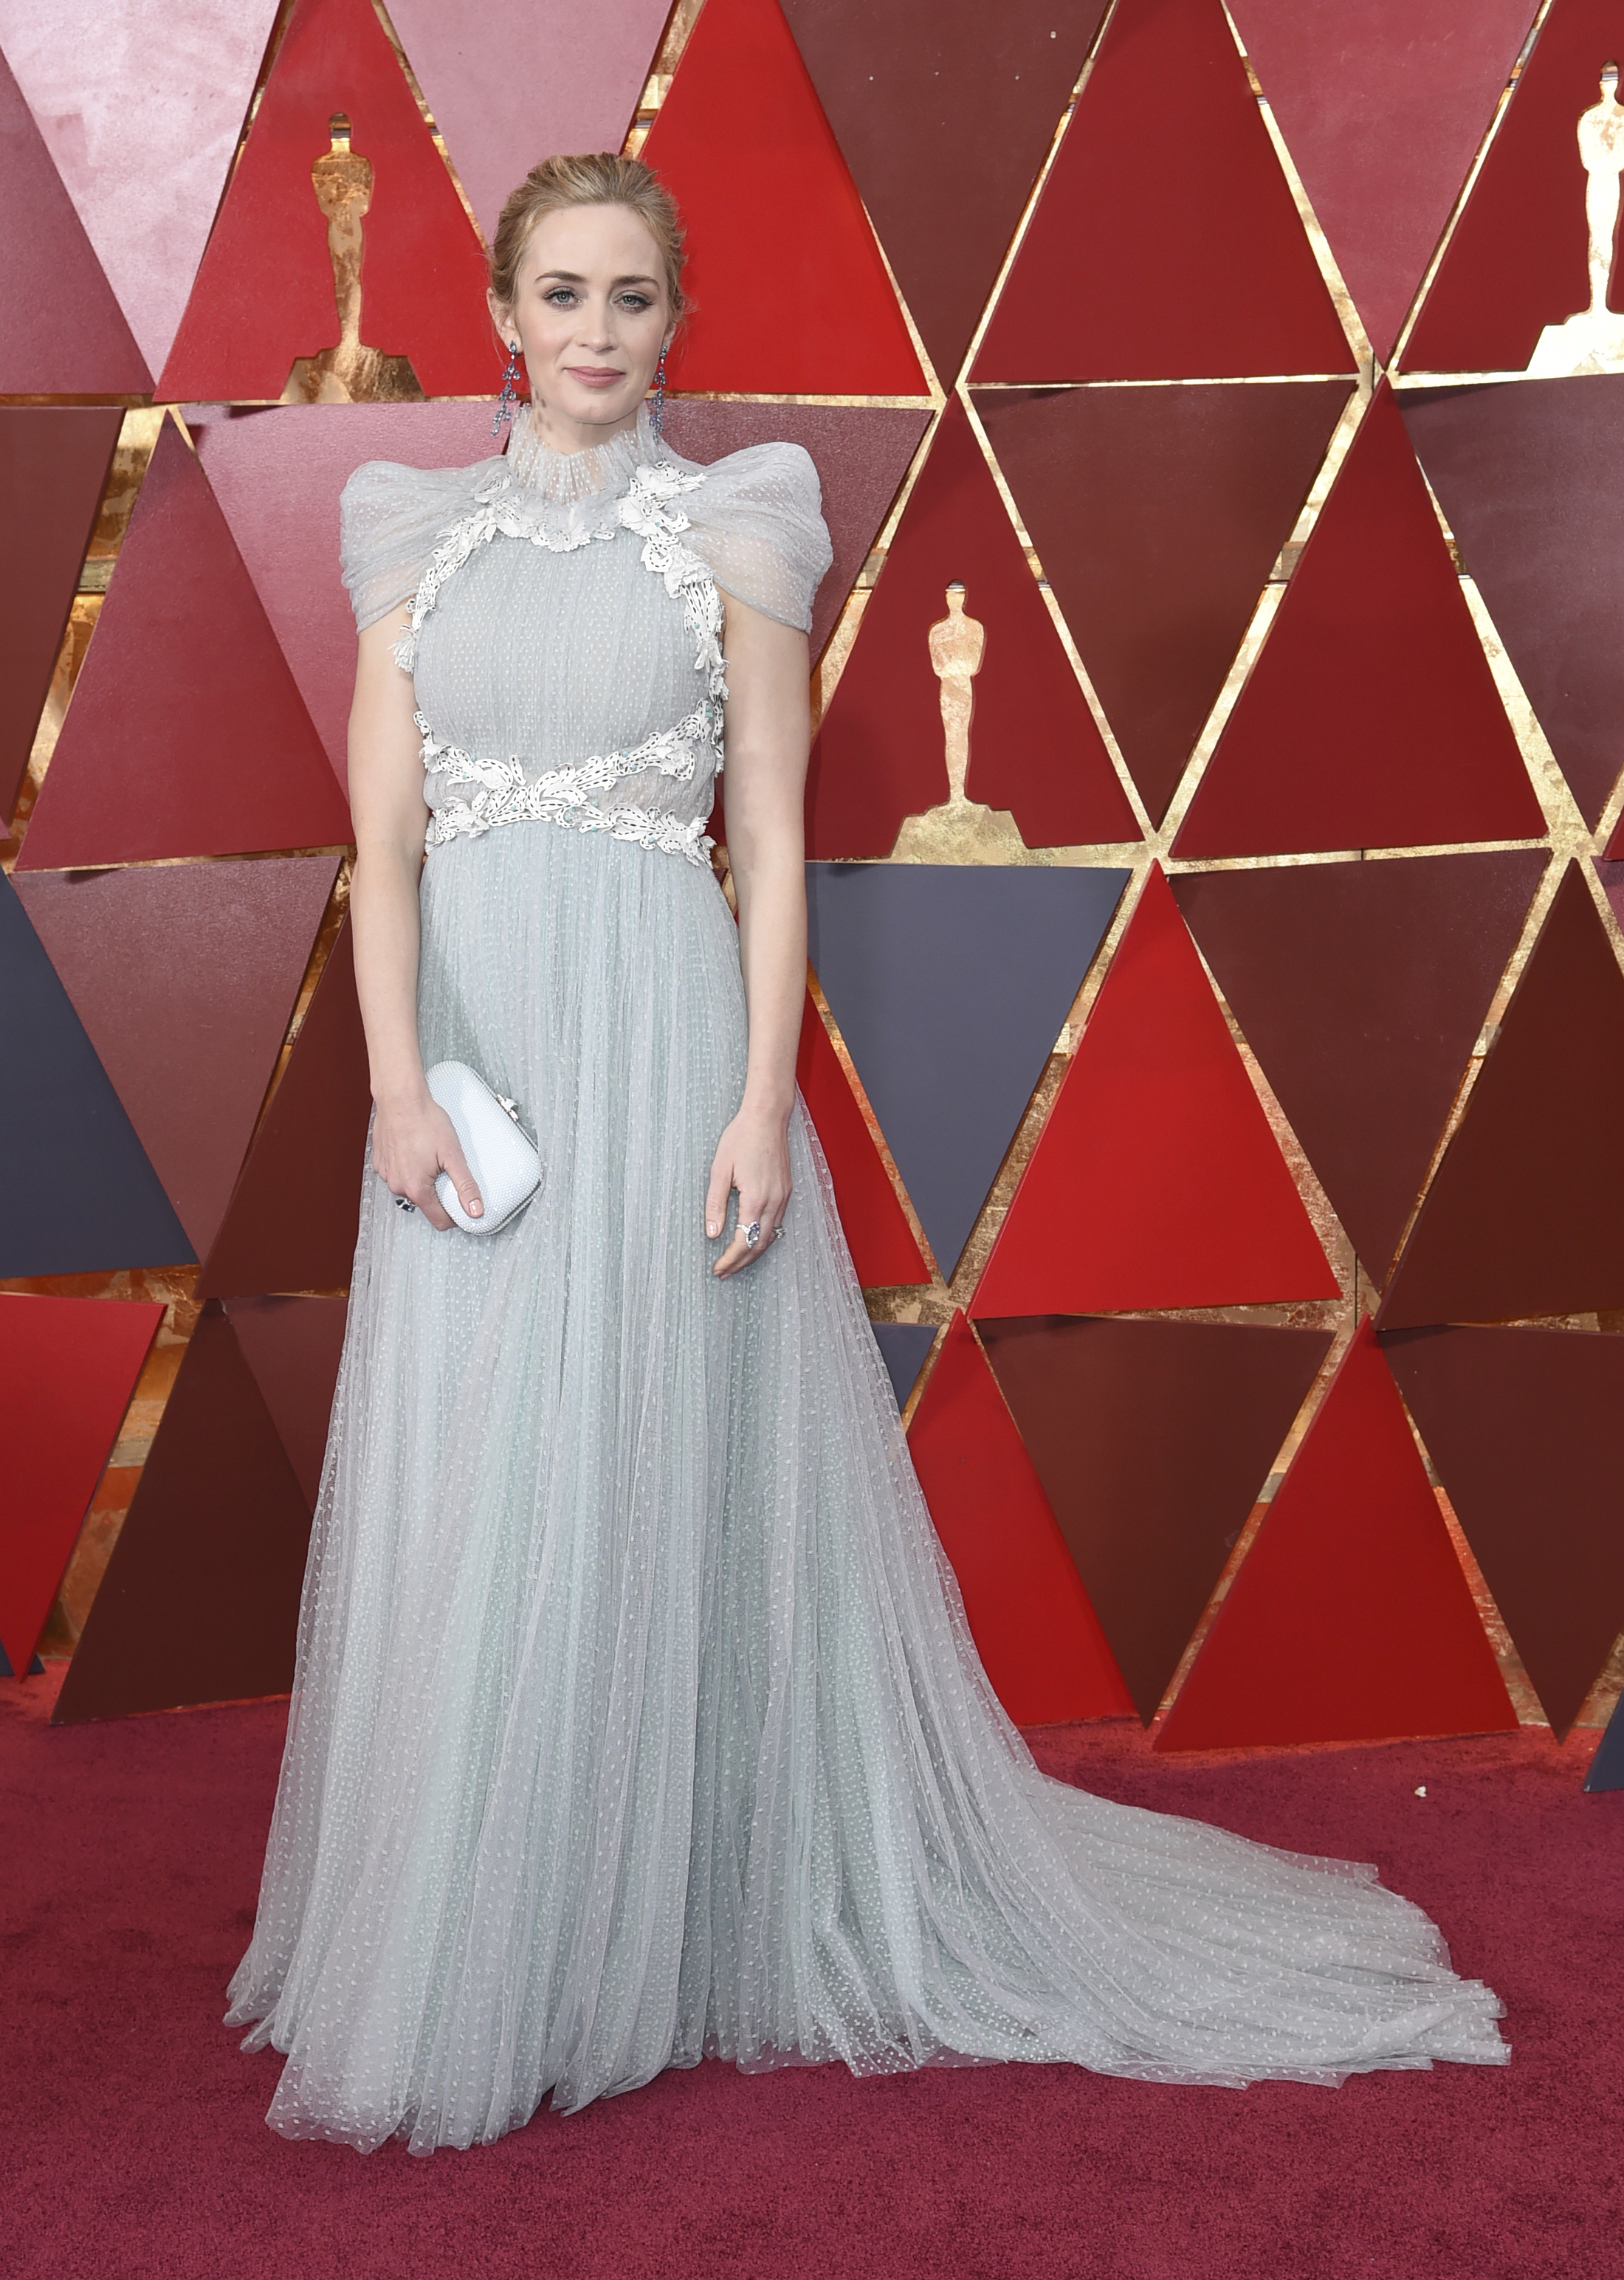 "<div class=""meta image-caption""><div class=""origin-logo origin-image none""><span>none</span></div><span class=""caption-text"">Emily Blunt of ''Mary Poppins Returns'' arrives at the Oscars on Sunday, March 4, 2018, at the Dolby Theatre in Los Angeles. (Richard Shotwell/Invision/AP)</span></div>"